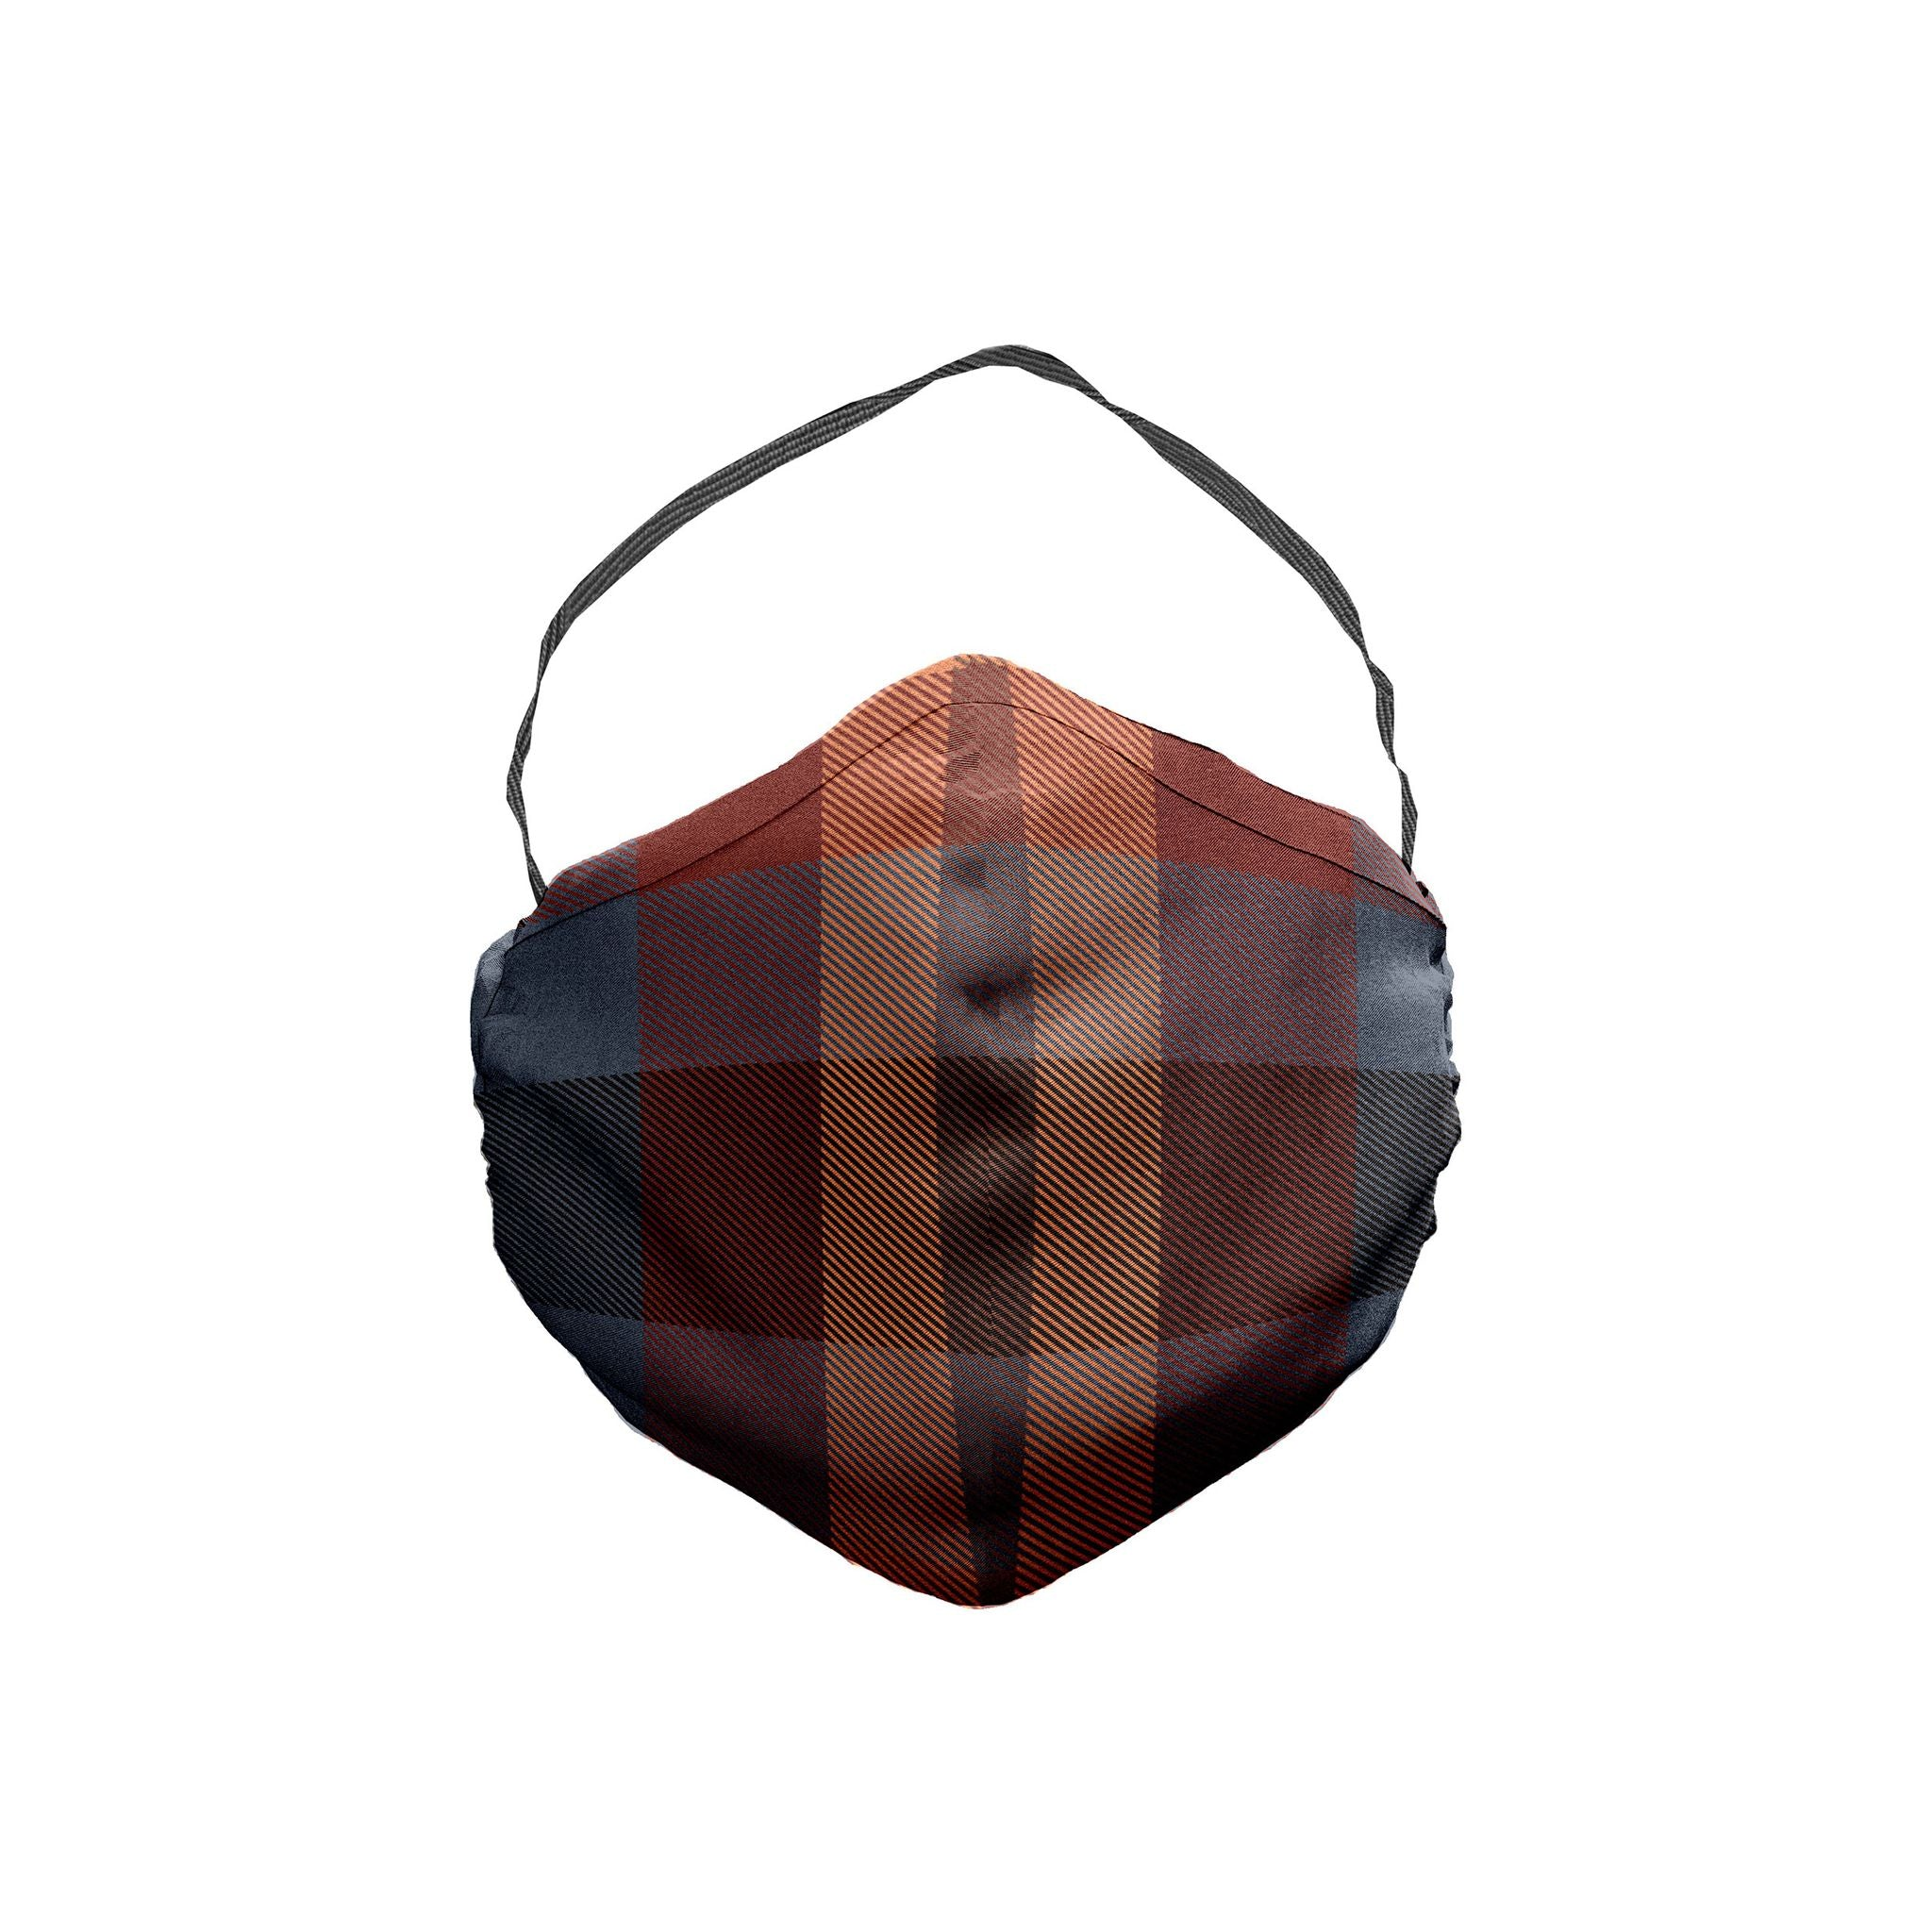 The Nightclubbing Plaid Face Mask 5 Pack